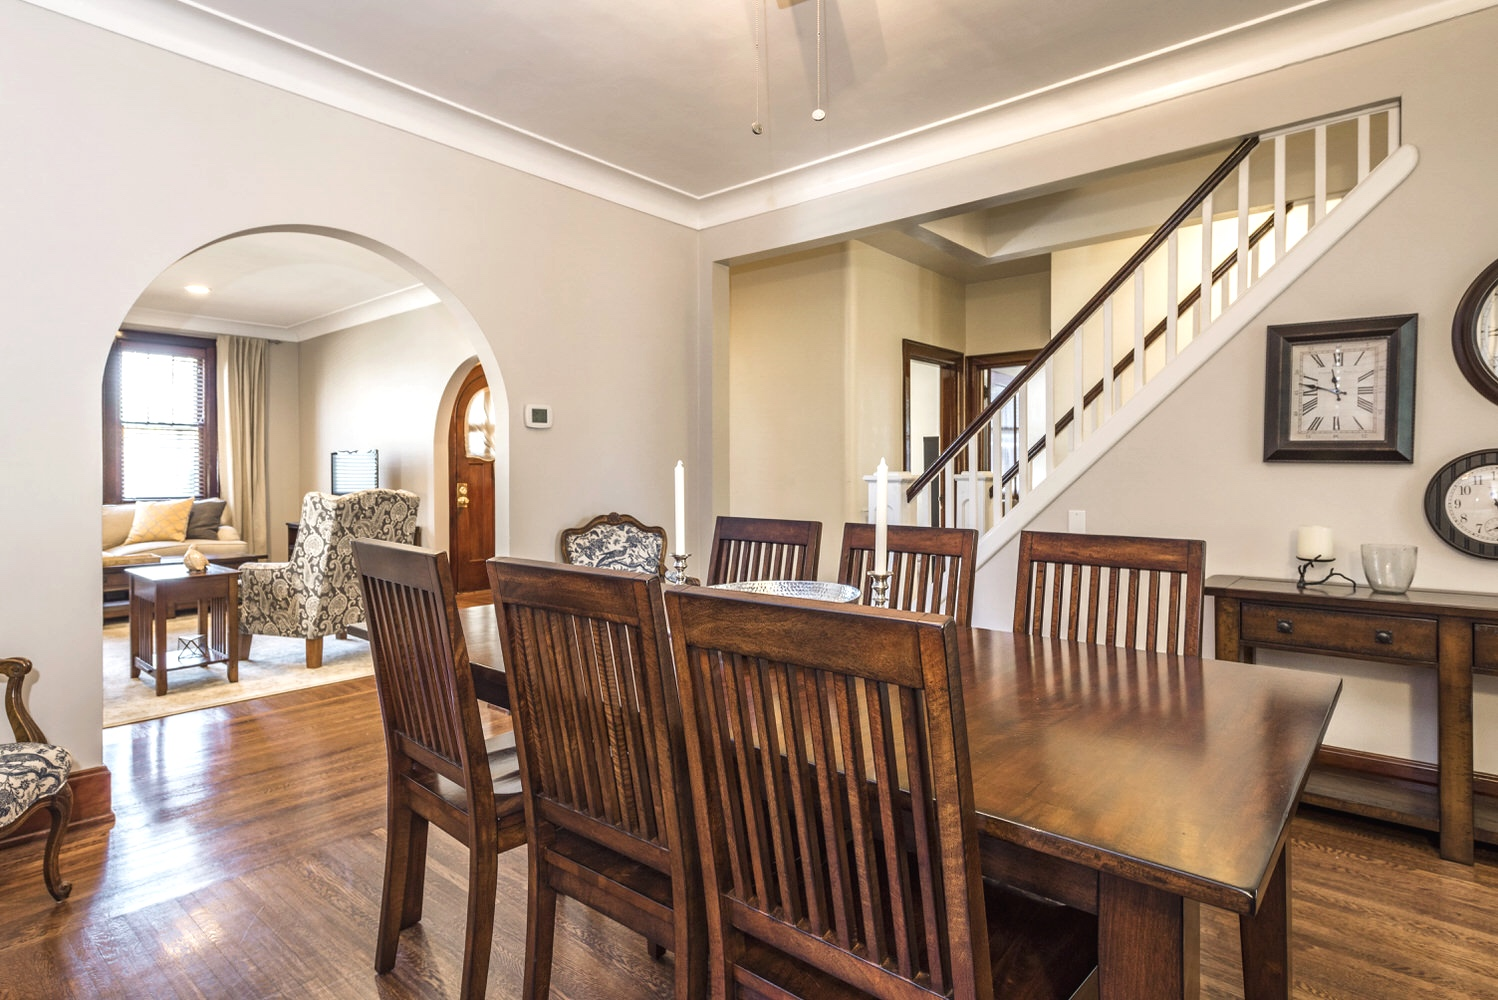 Real Estate, Residential, Interior, Dining Room